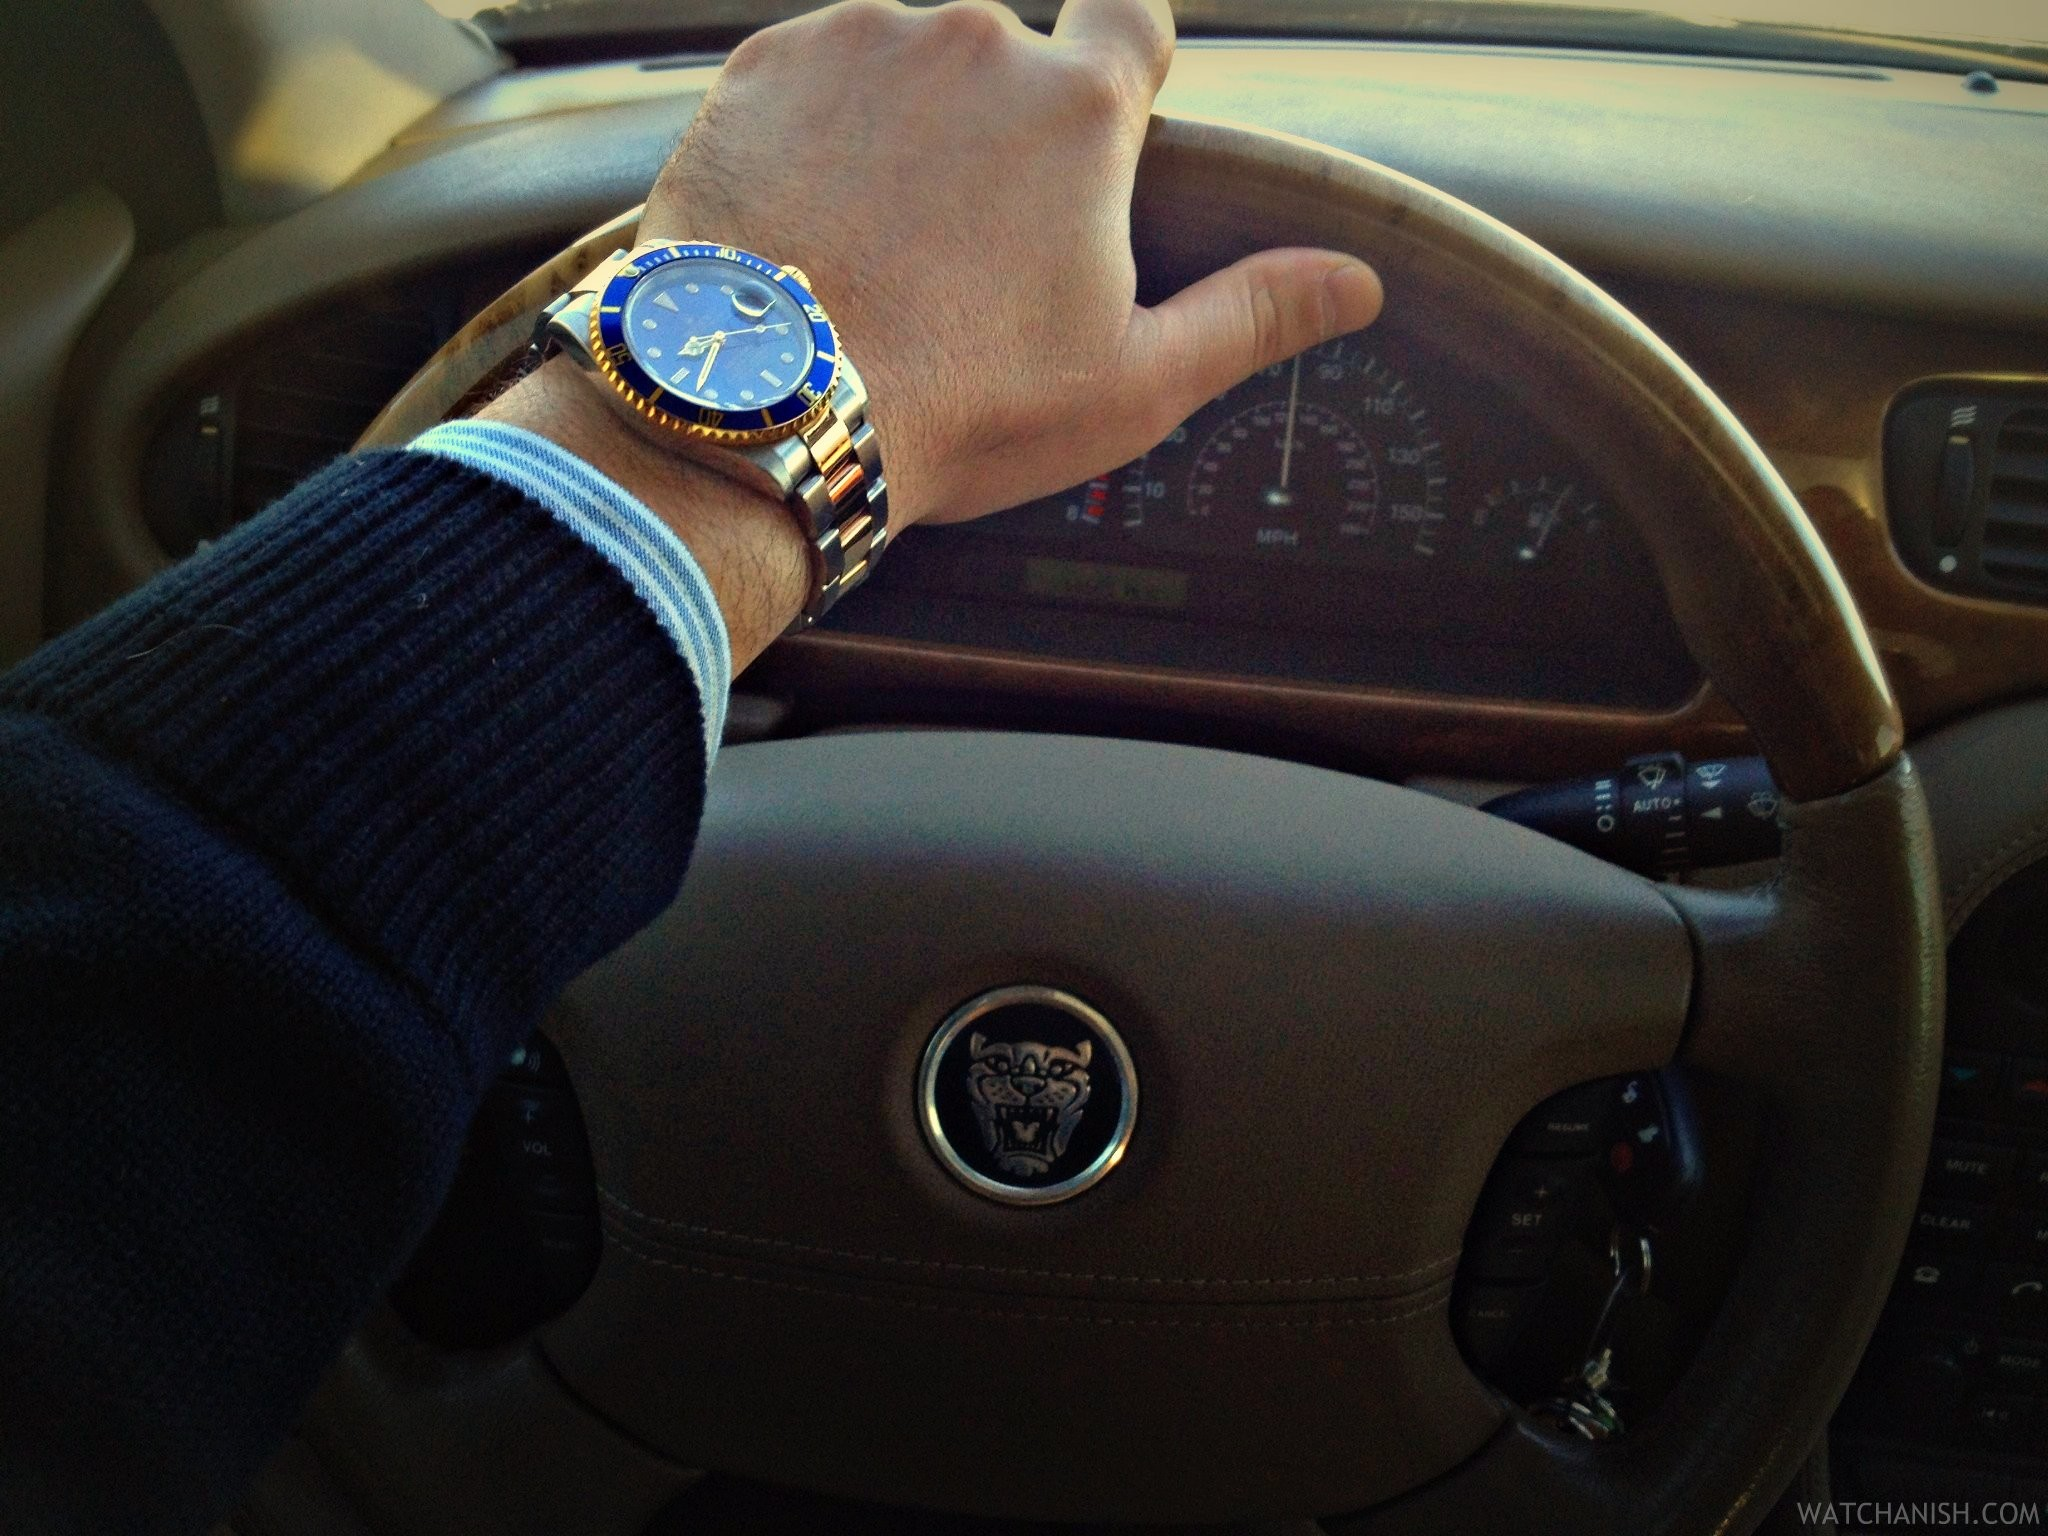 Res: 2048x1536, DOWNLOAD PHOTO · Previous story Download Rolex Watch Wallpapers